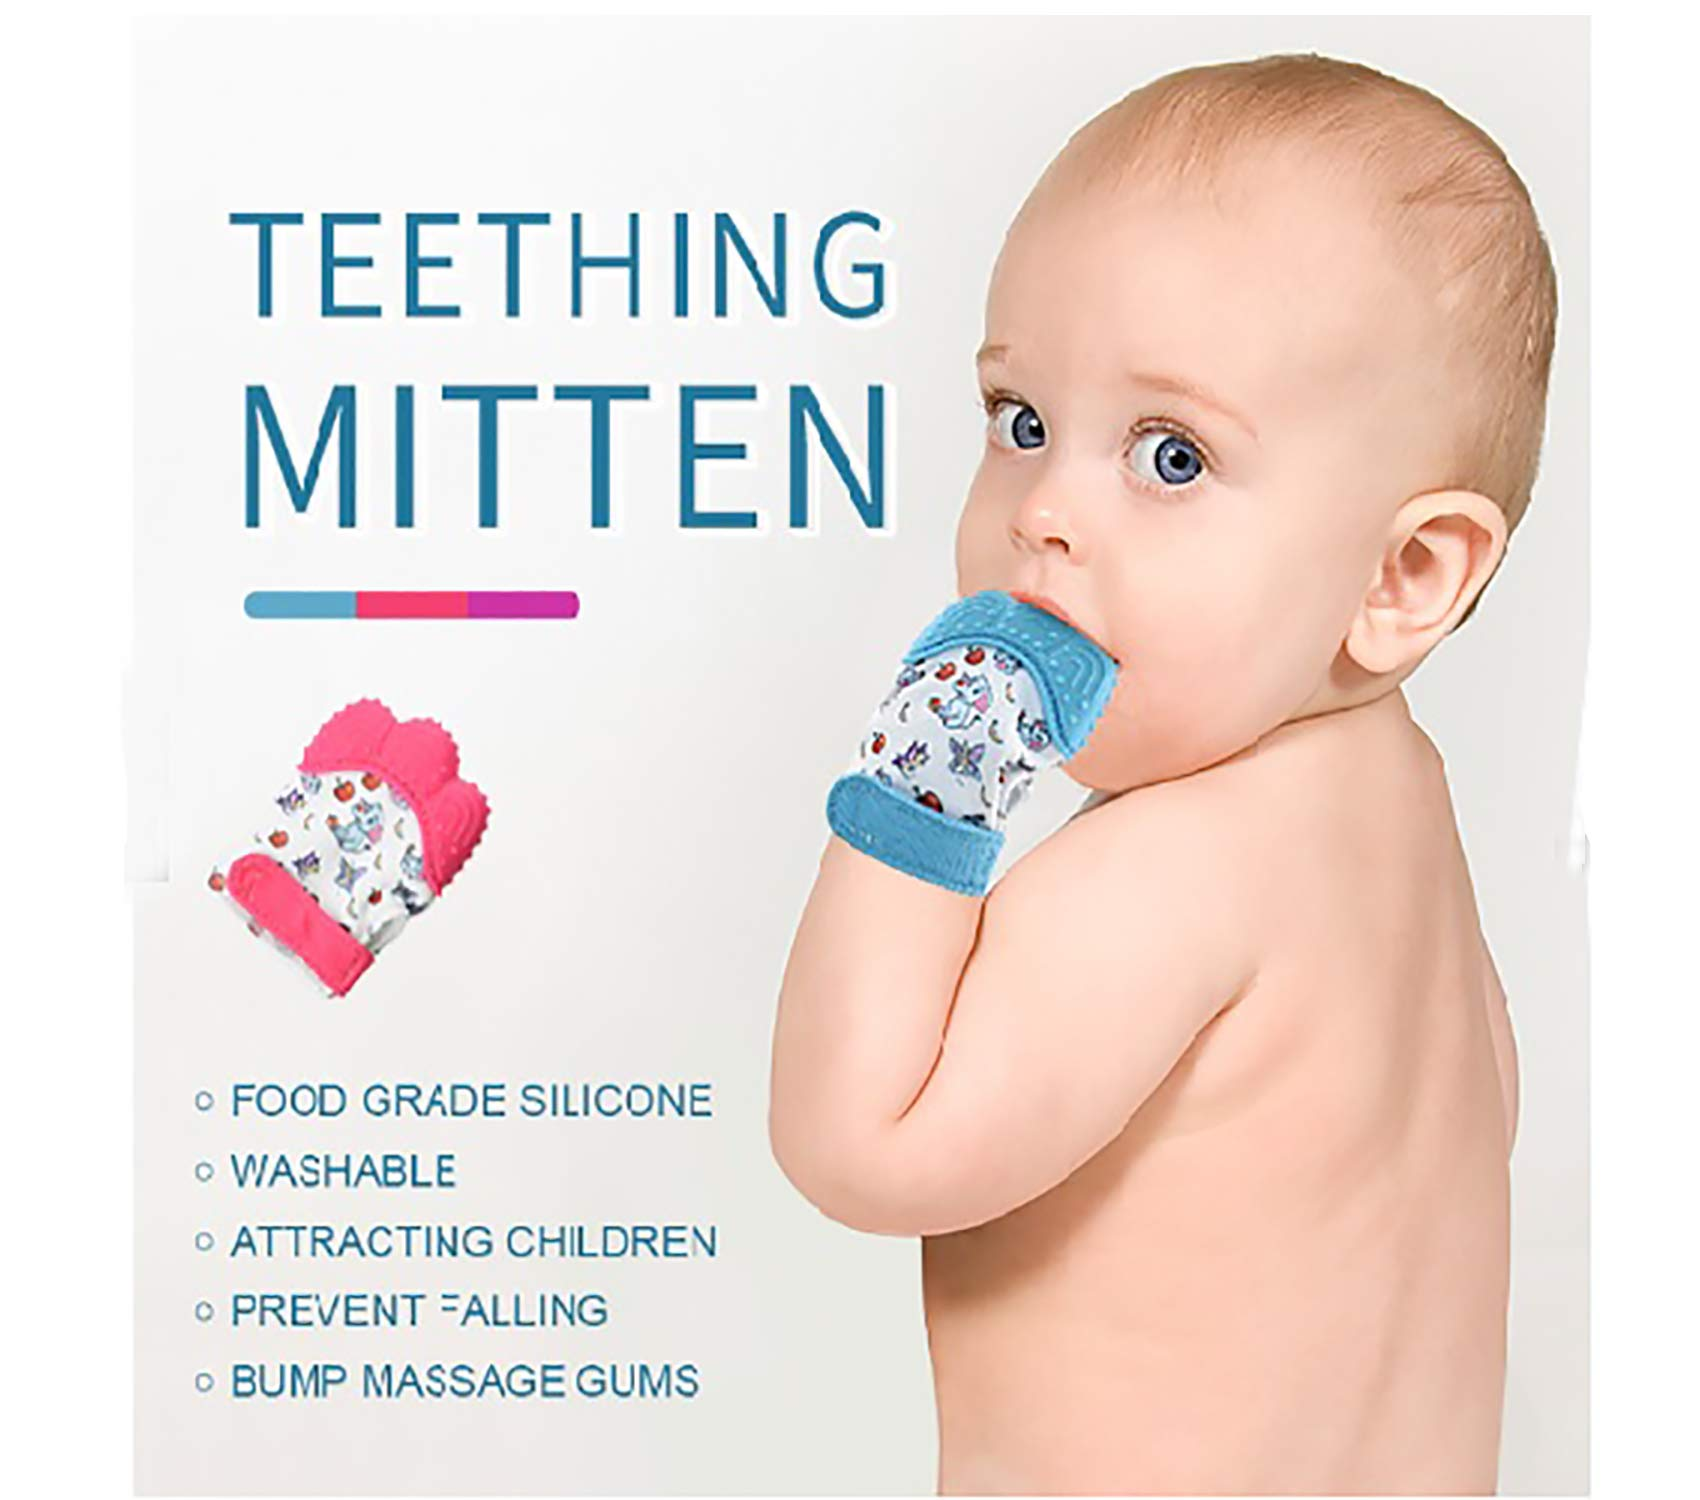 O'zone Baby Teething Mittens - Teething Mitten Provides Soothing Pain Relief Babies, Infants Toddler - Safe BPA-Free Baby Teething - Effective Anti-Scratch 3 to 12 Month Old Baby (Blue) by O'zone (Image #1)